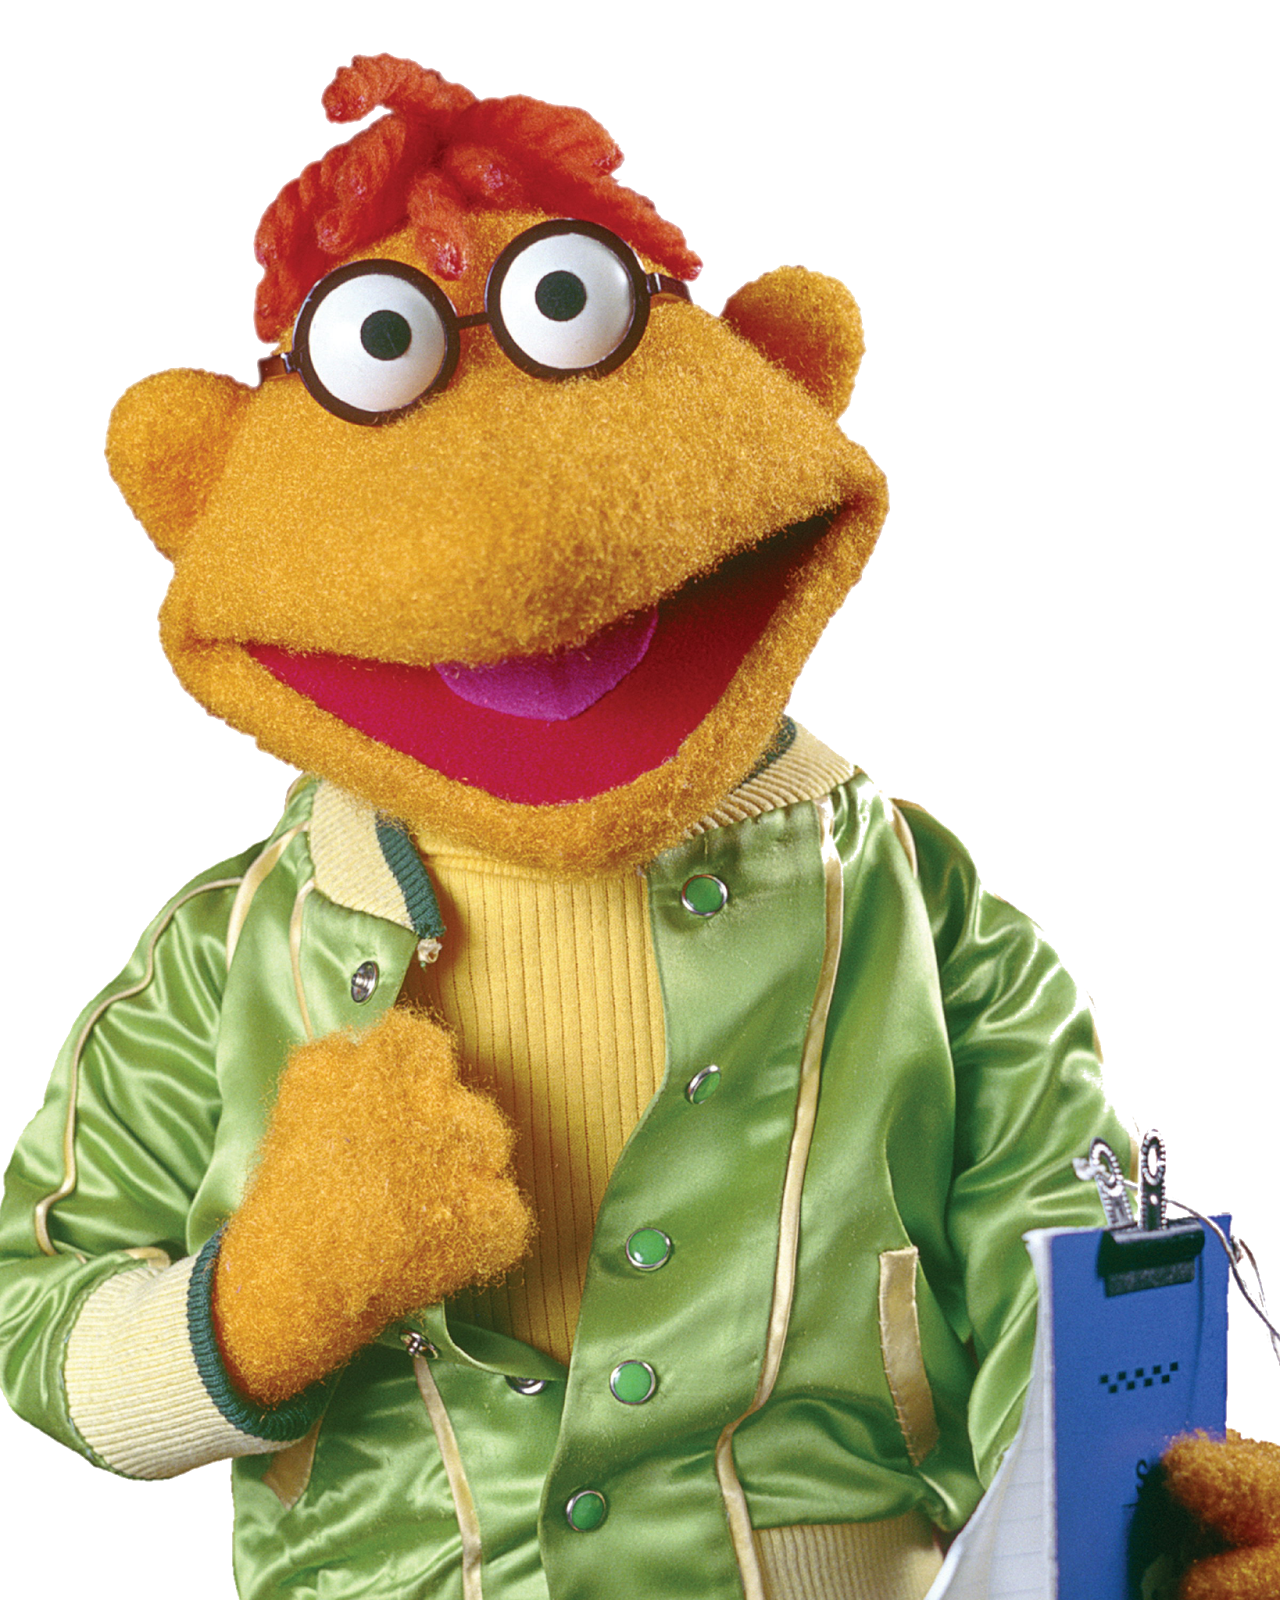 Beaker muppet png. Weekly wednesdays scooter the